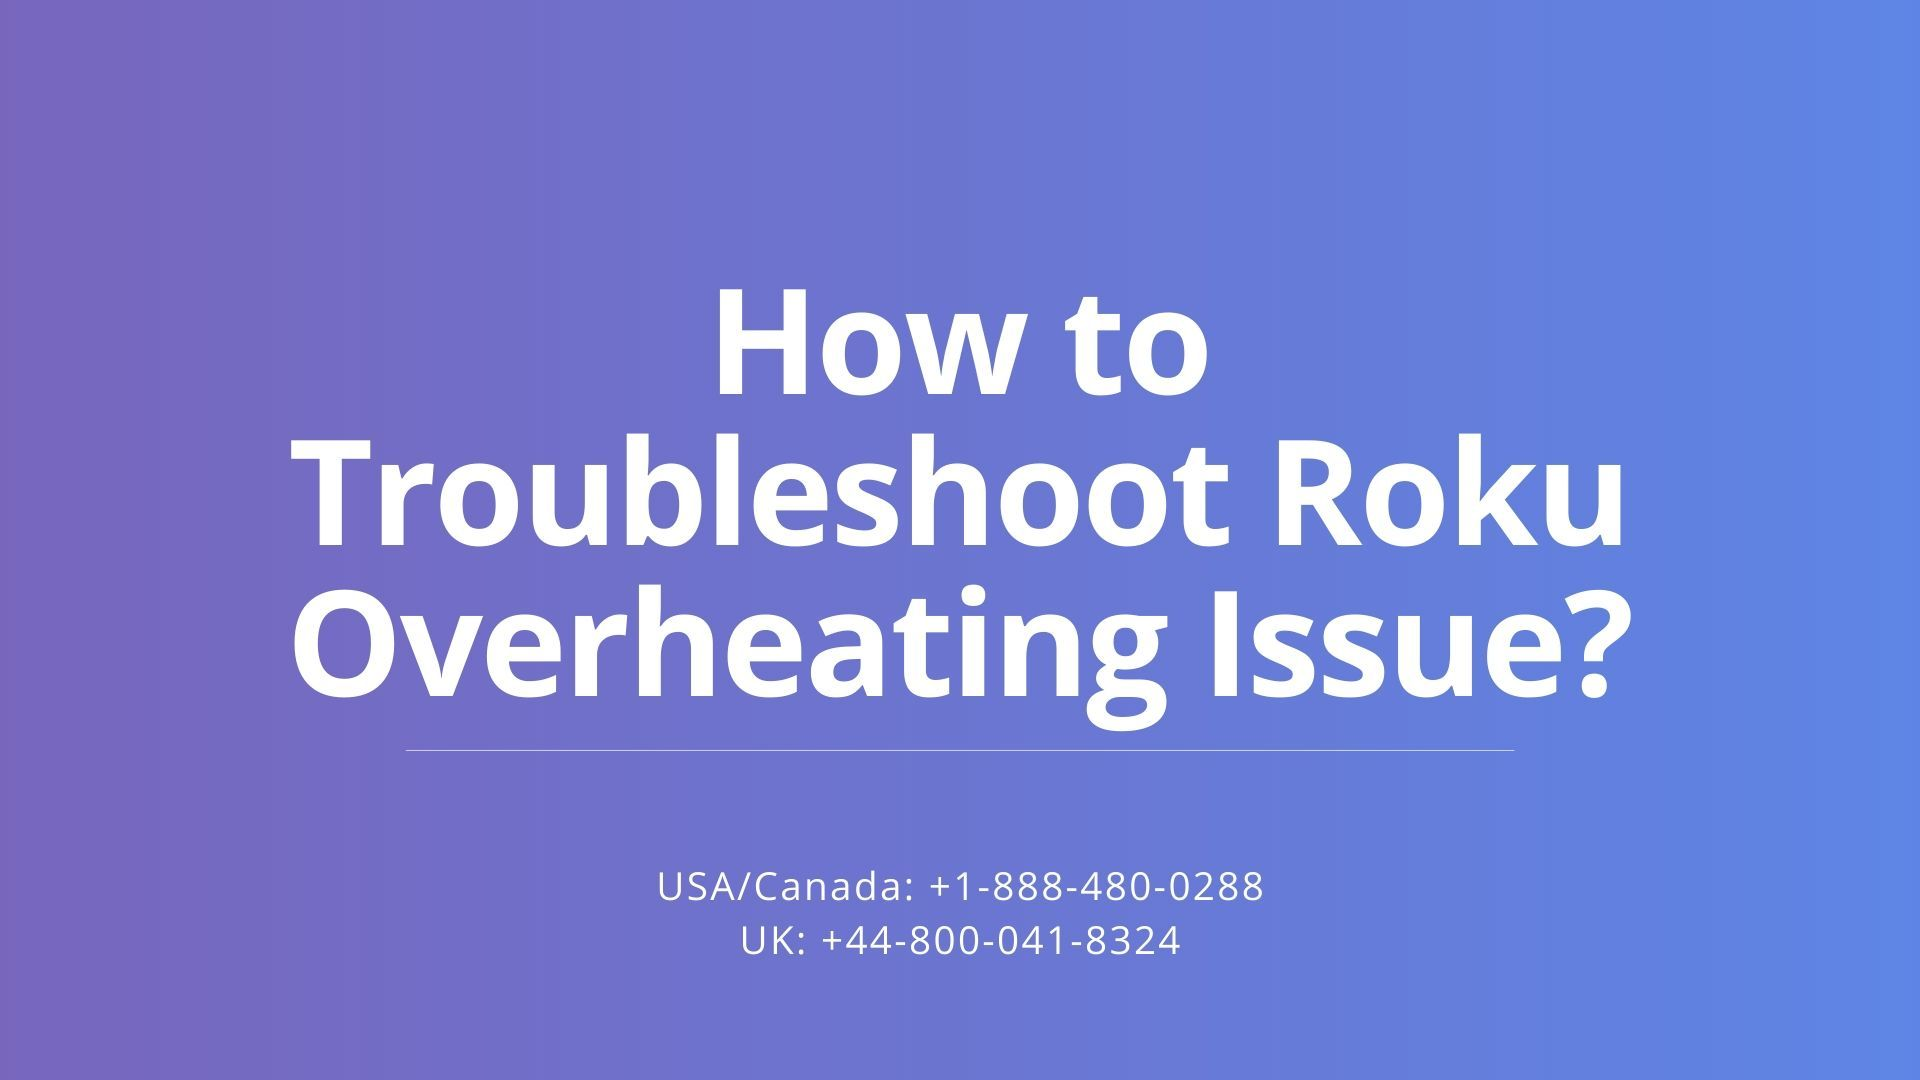 Guide to Troubleshoot Roku Device Overheating Issue in